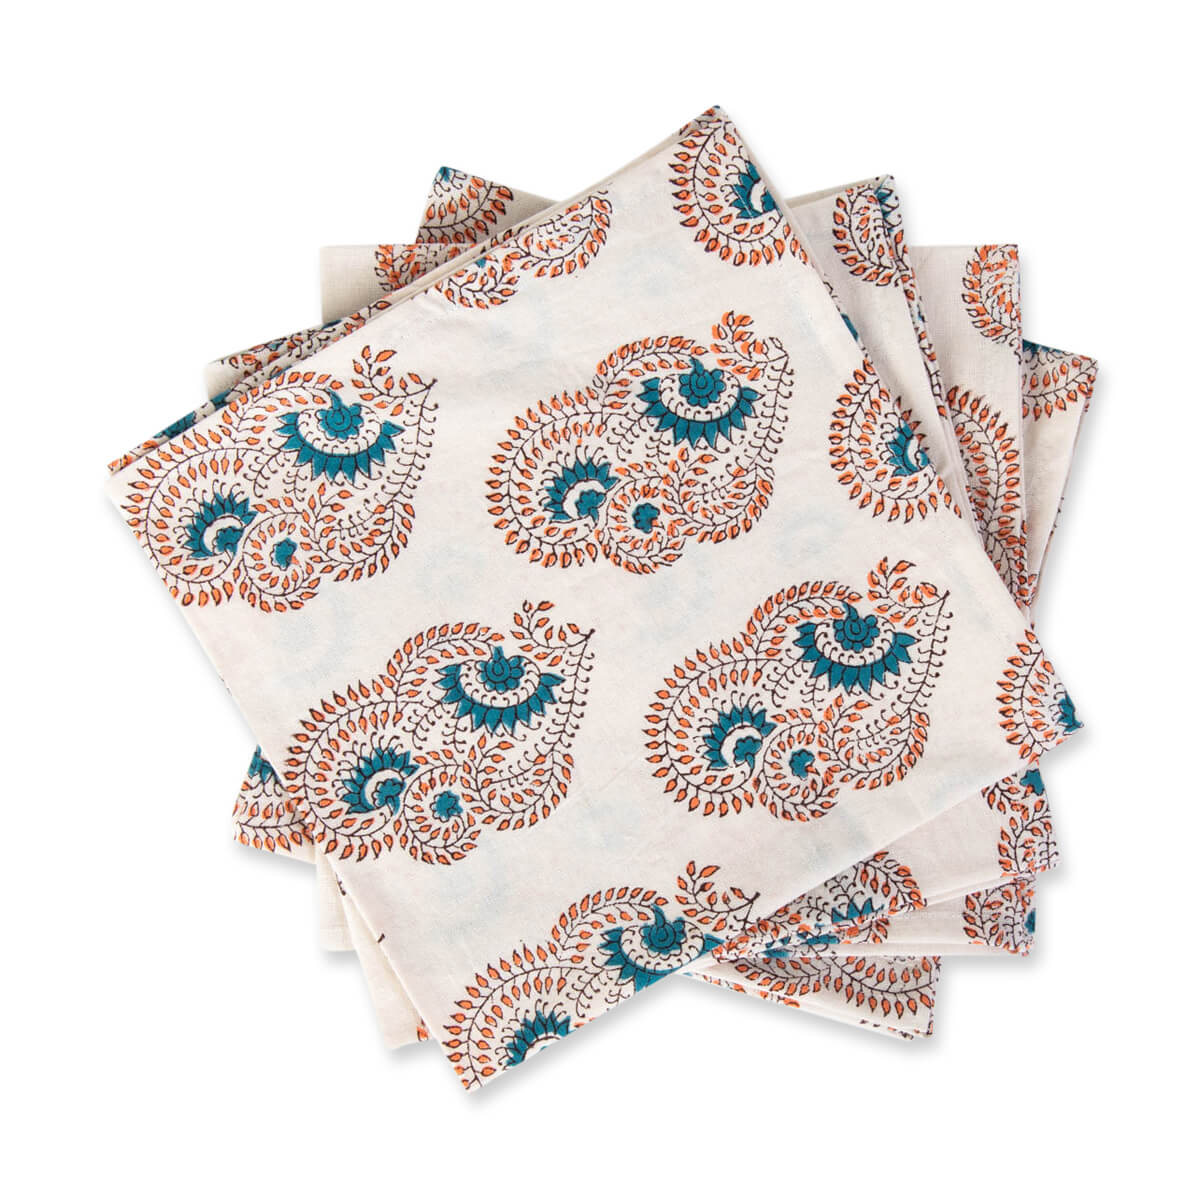 Furbish Studio - Bar Harbor Napkin paisley mandala print stack of 4